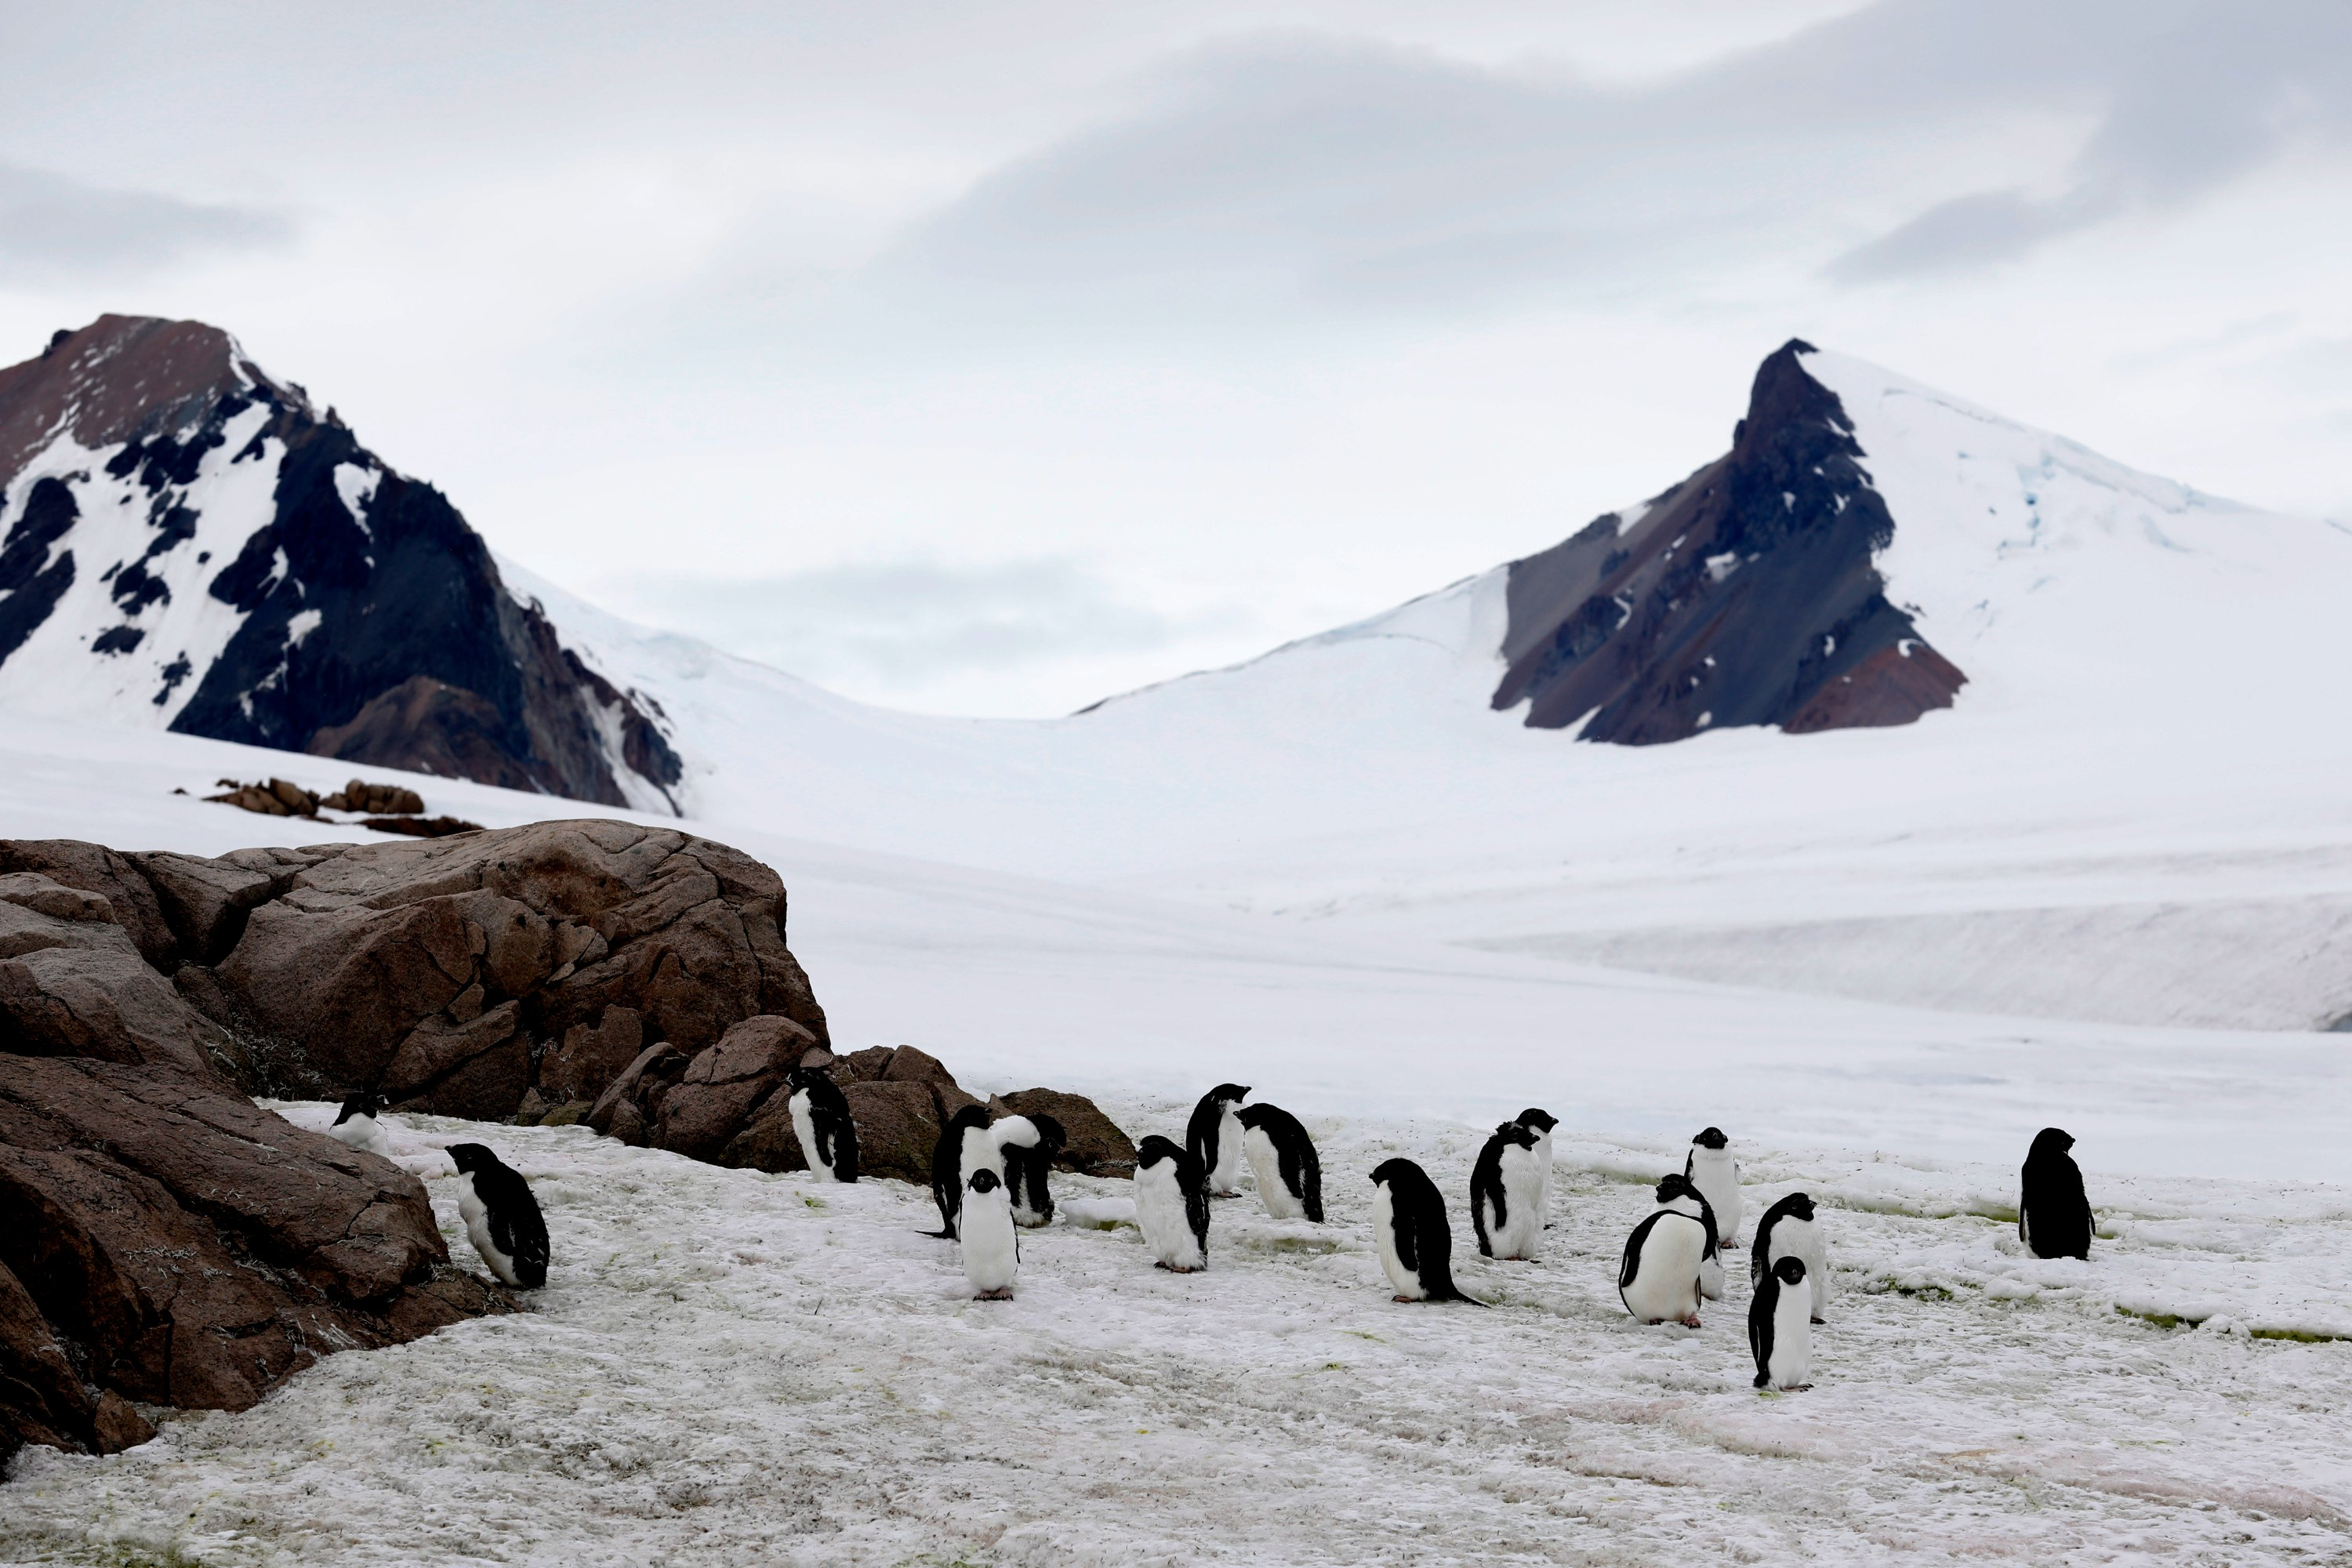 It's possible to spot colonies of penguins everywhere you go on the continent. (Photo by Hayrettin Bektaş)